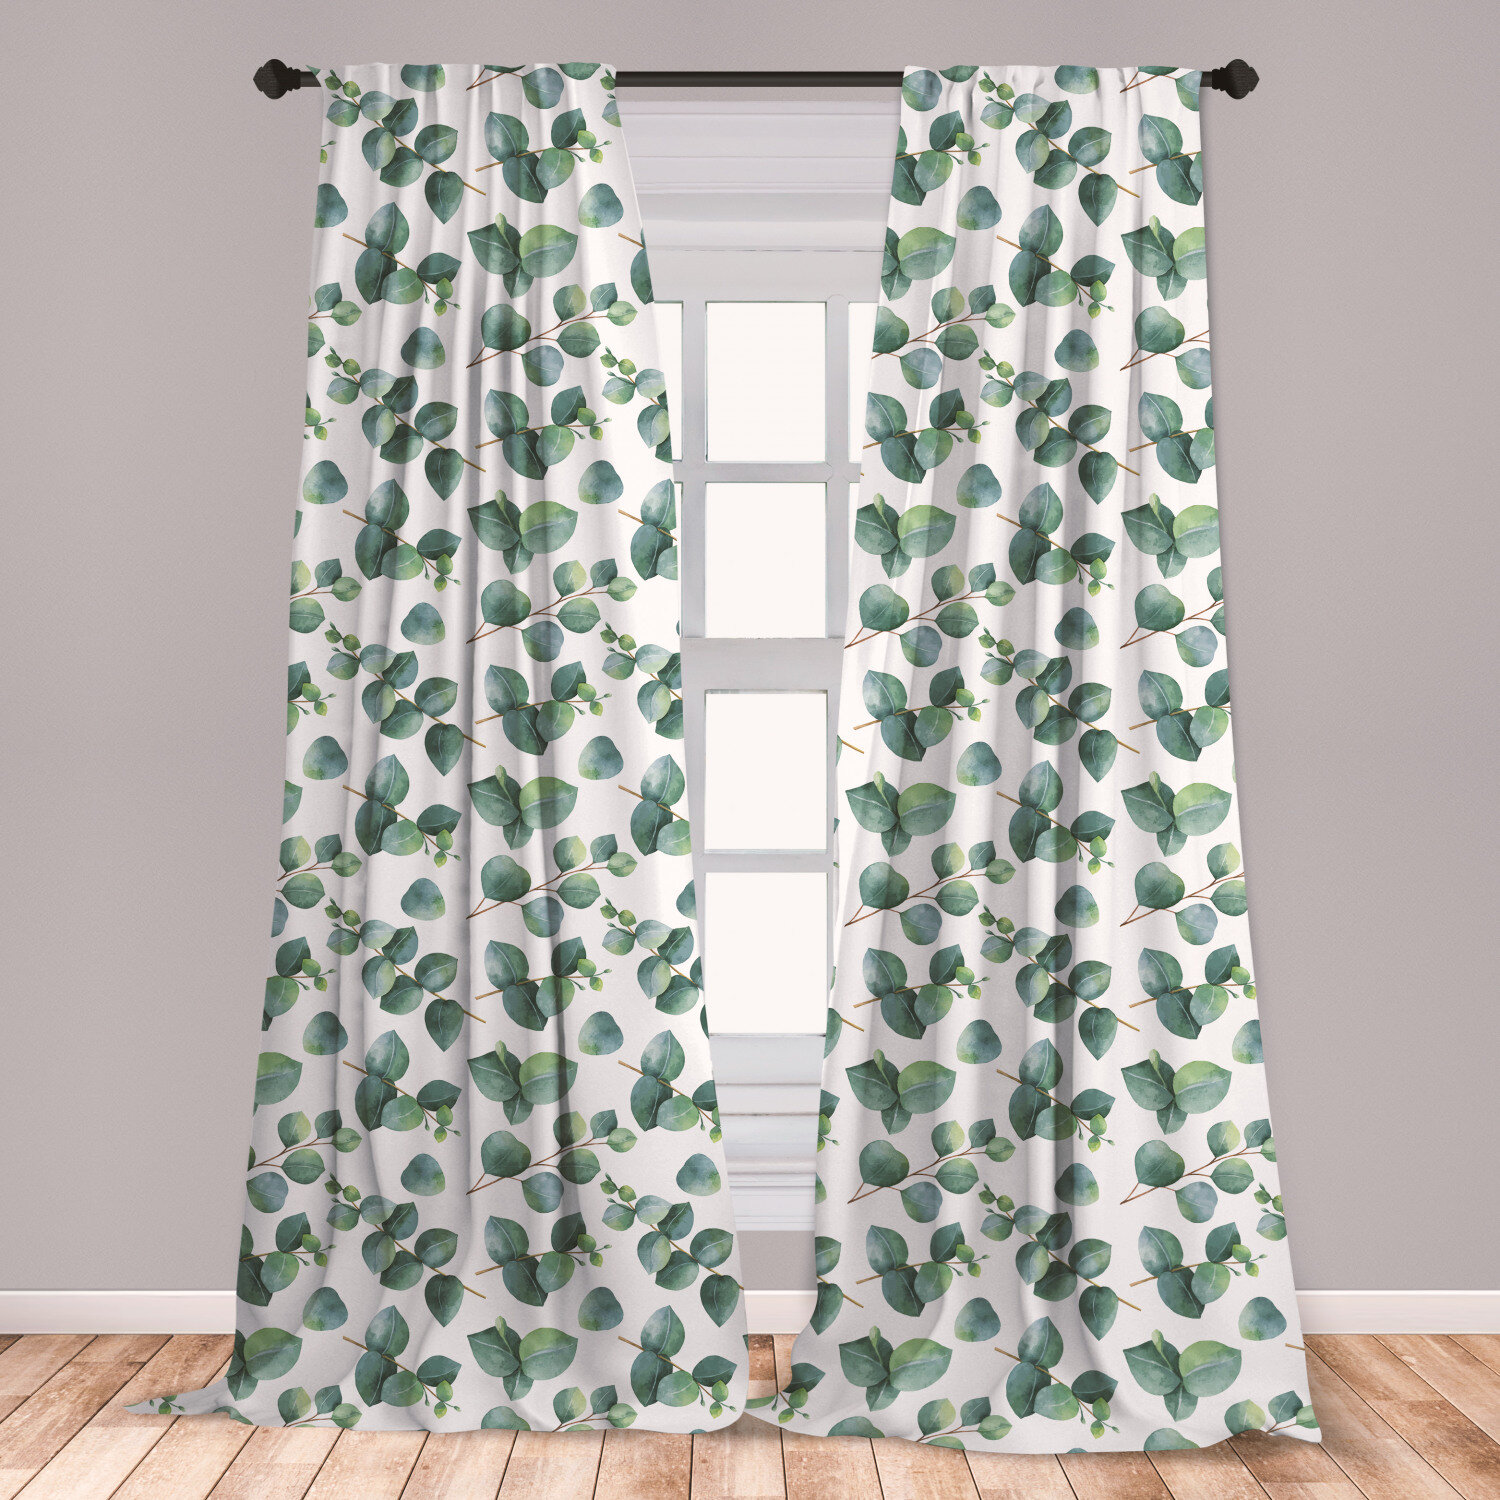 East Urban Home Ambesonne Leaf 2 Panel Curtain Set, Watercolor